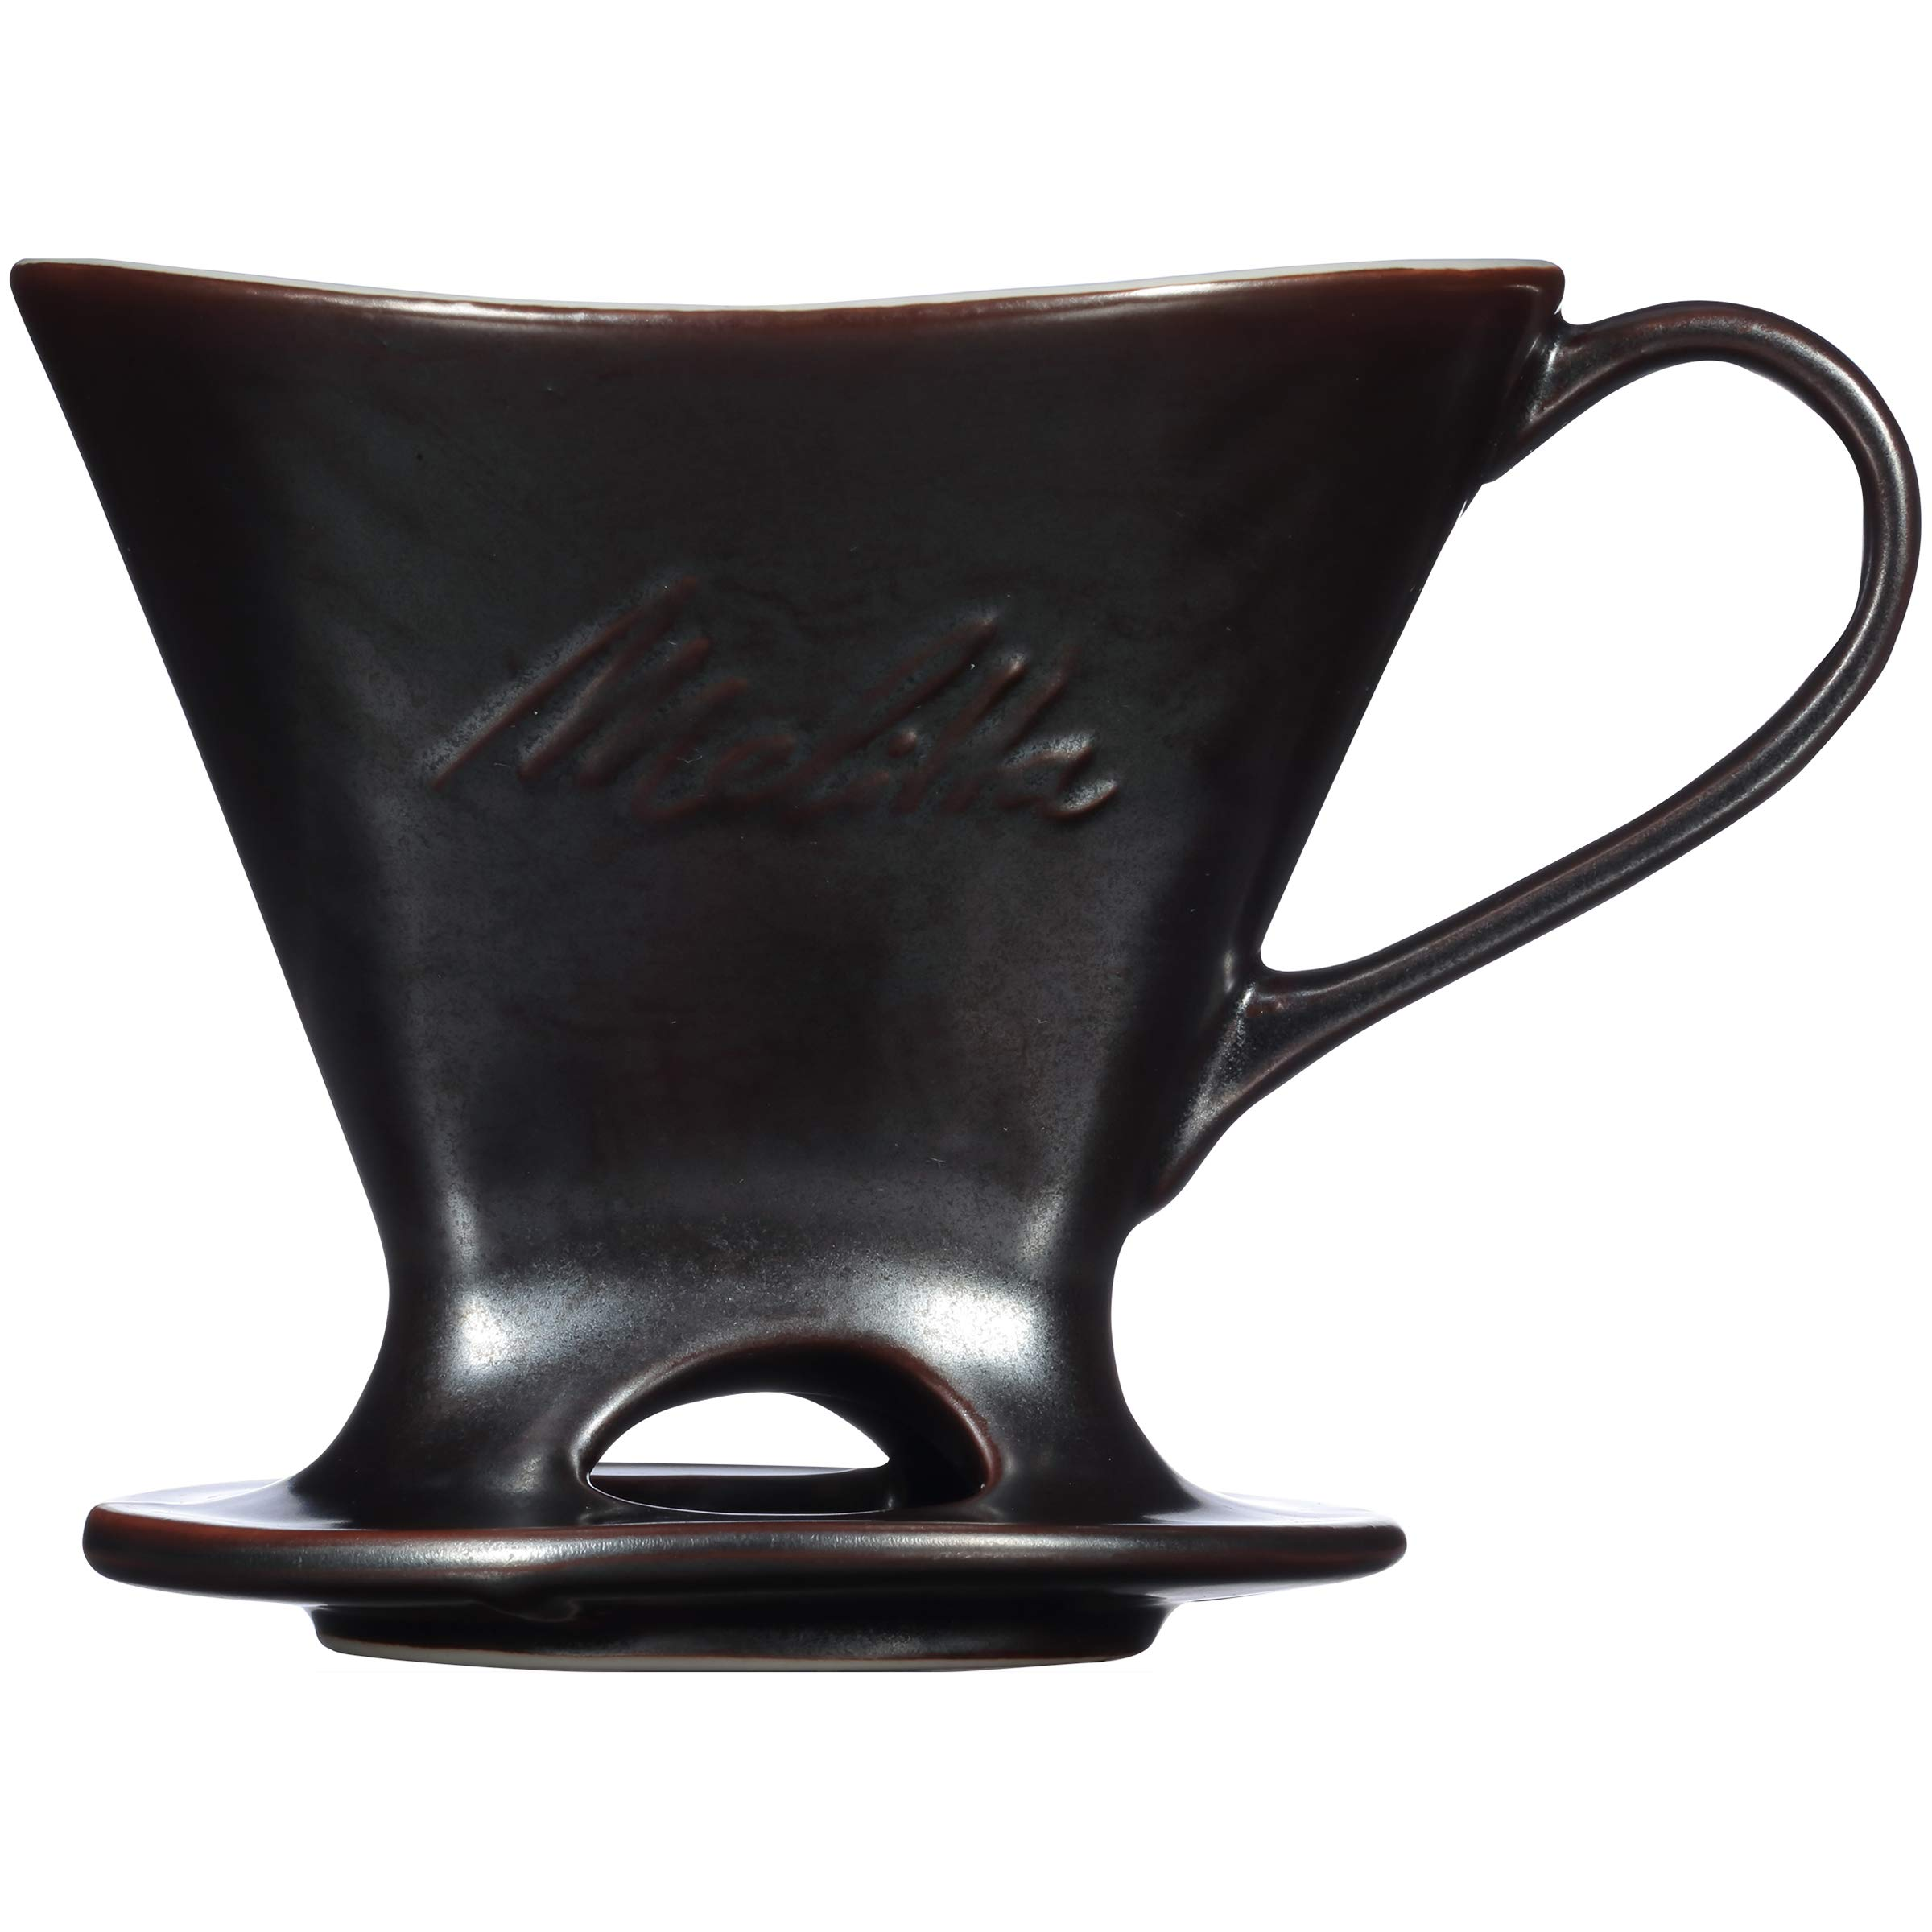 Melitta Signature Series Single Cup Porcelain Pour-Over Cone Coffeemaker, Gunmetal Gray by Melitta